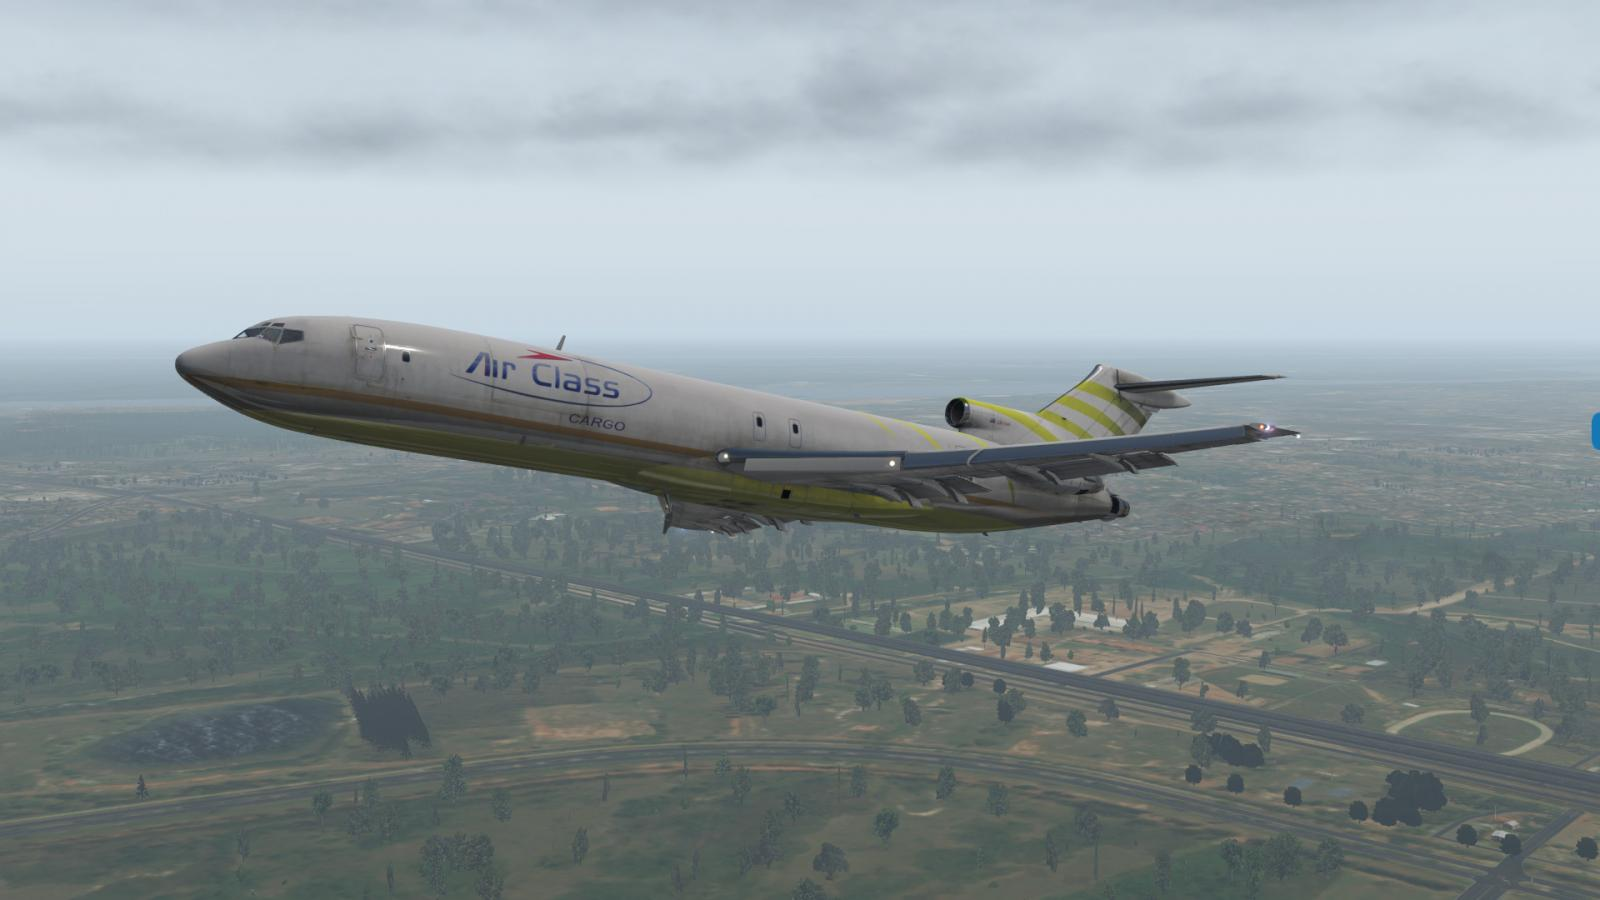 FlyJSim 727 Series Professional V3- Master Repaint Request